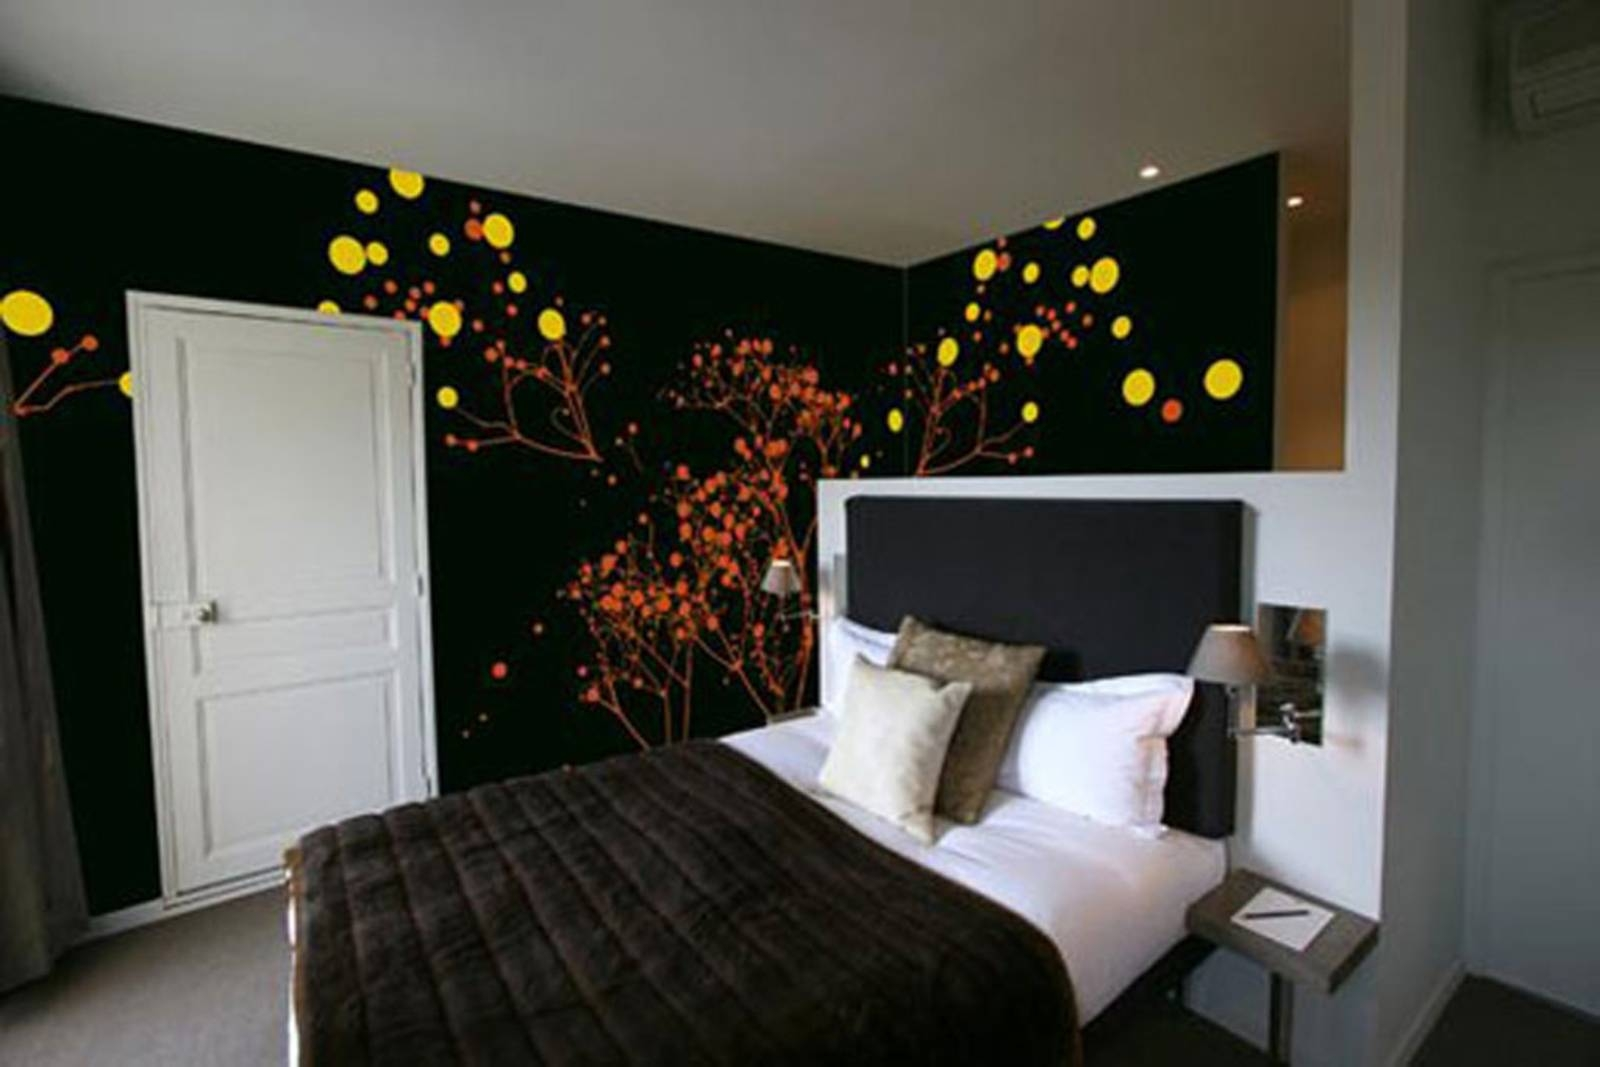 Stunning Diy Bedroom Wall Decor On With Hd Resolution 1024X1024 Inside Most Popular Bed Wall Art (View 21 of 25)